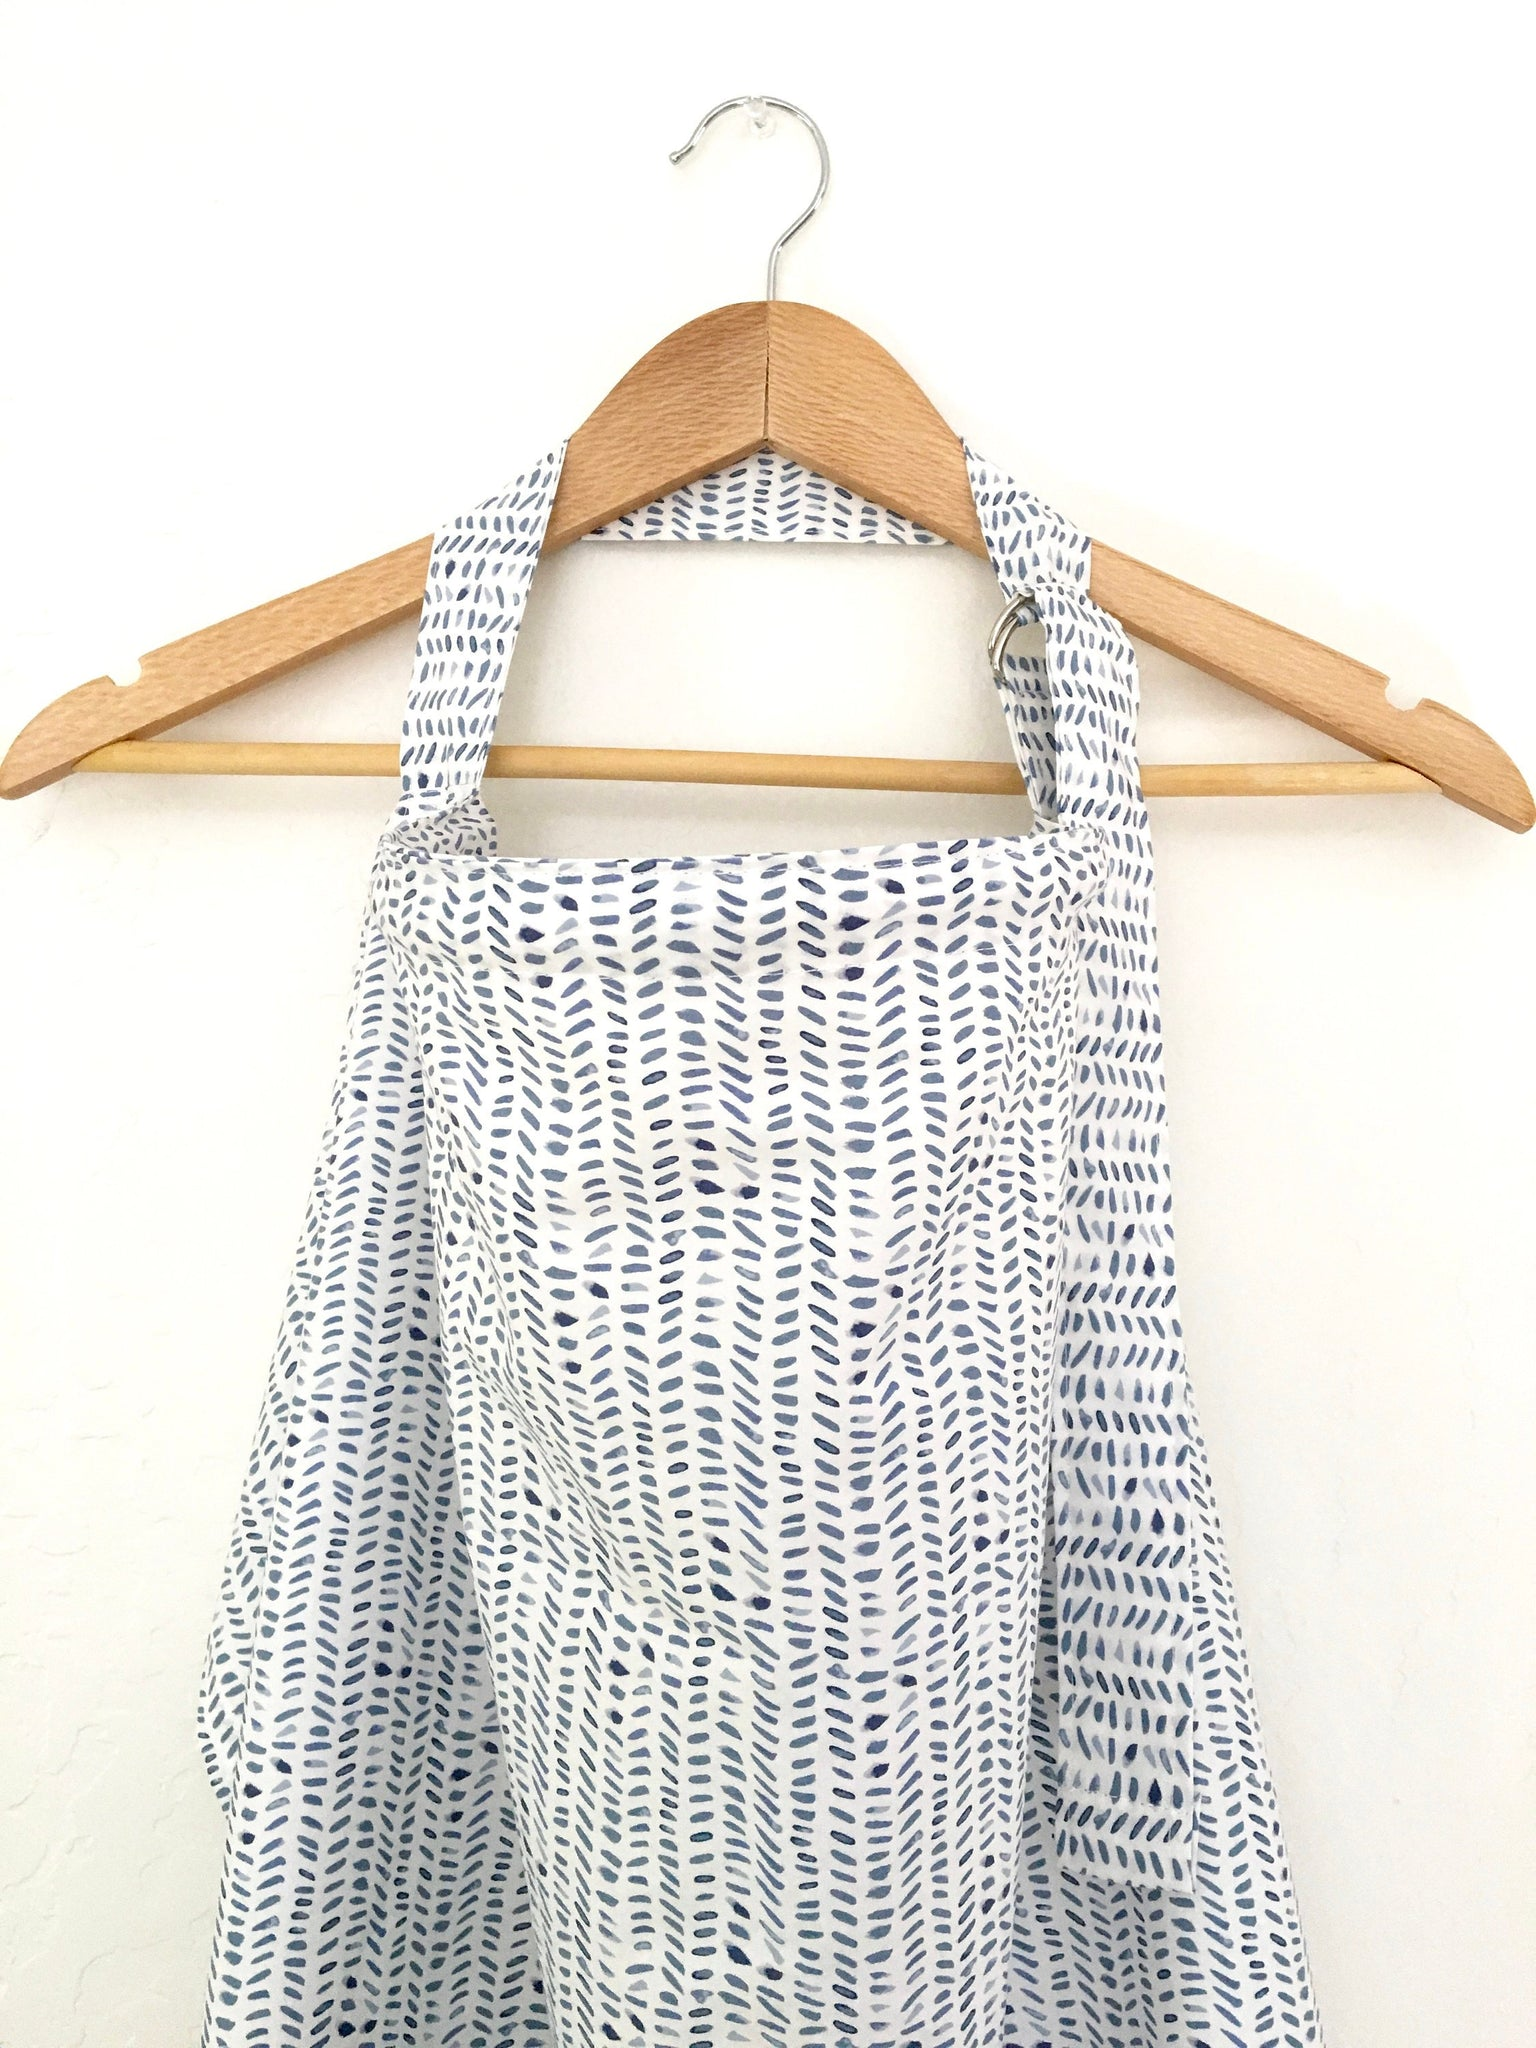 Wire Nursing Cover/ Blue Chevron Nursing Cover/ Hooter Hider/ Baby Shower Gift/ Gift for New Mom/ Gender Neutral Breastfeeding Cover - Stylish Little Ones Boutique